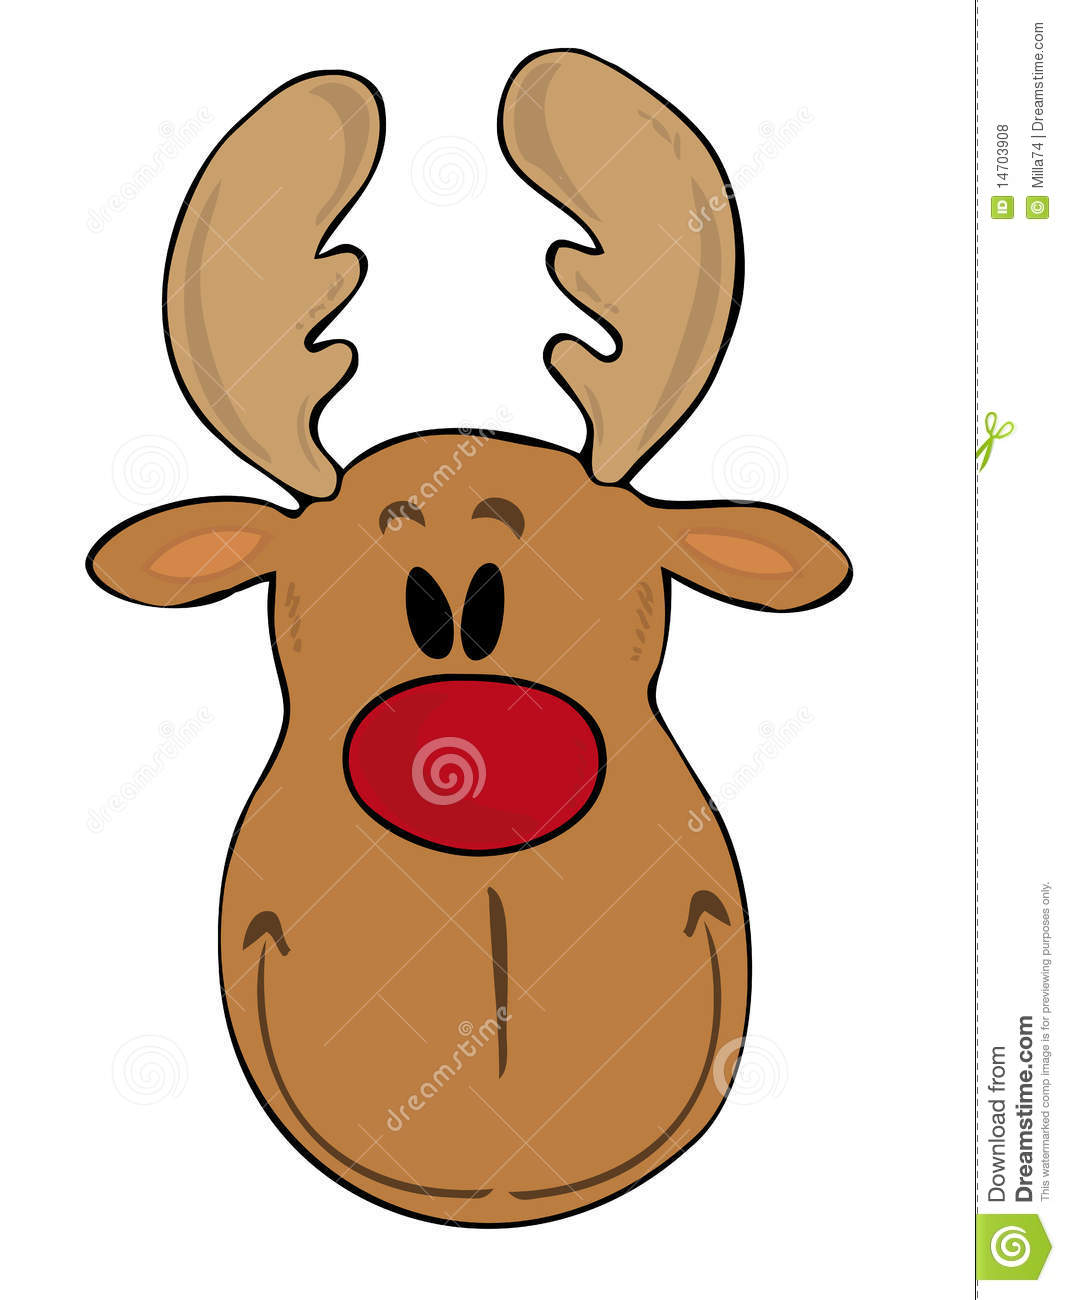 Funny Reindeer Face. Royalty Free Stock Photos - Image: 14703908